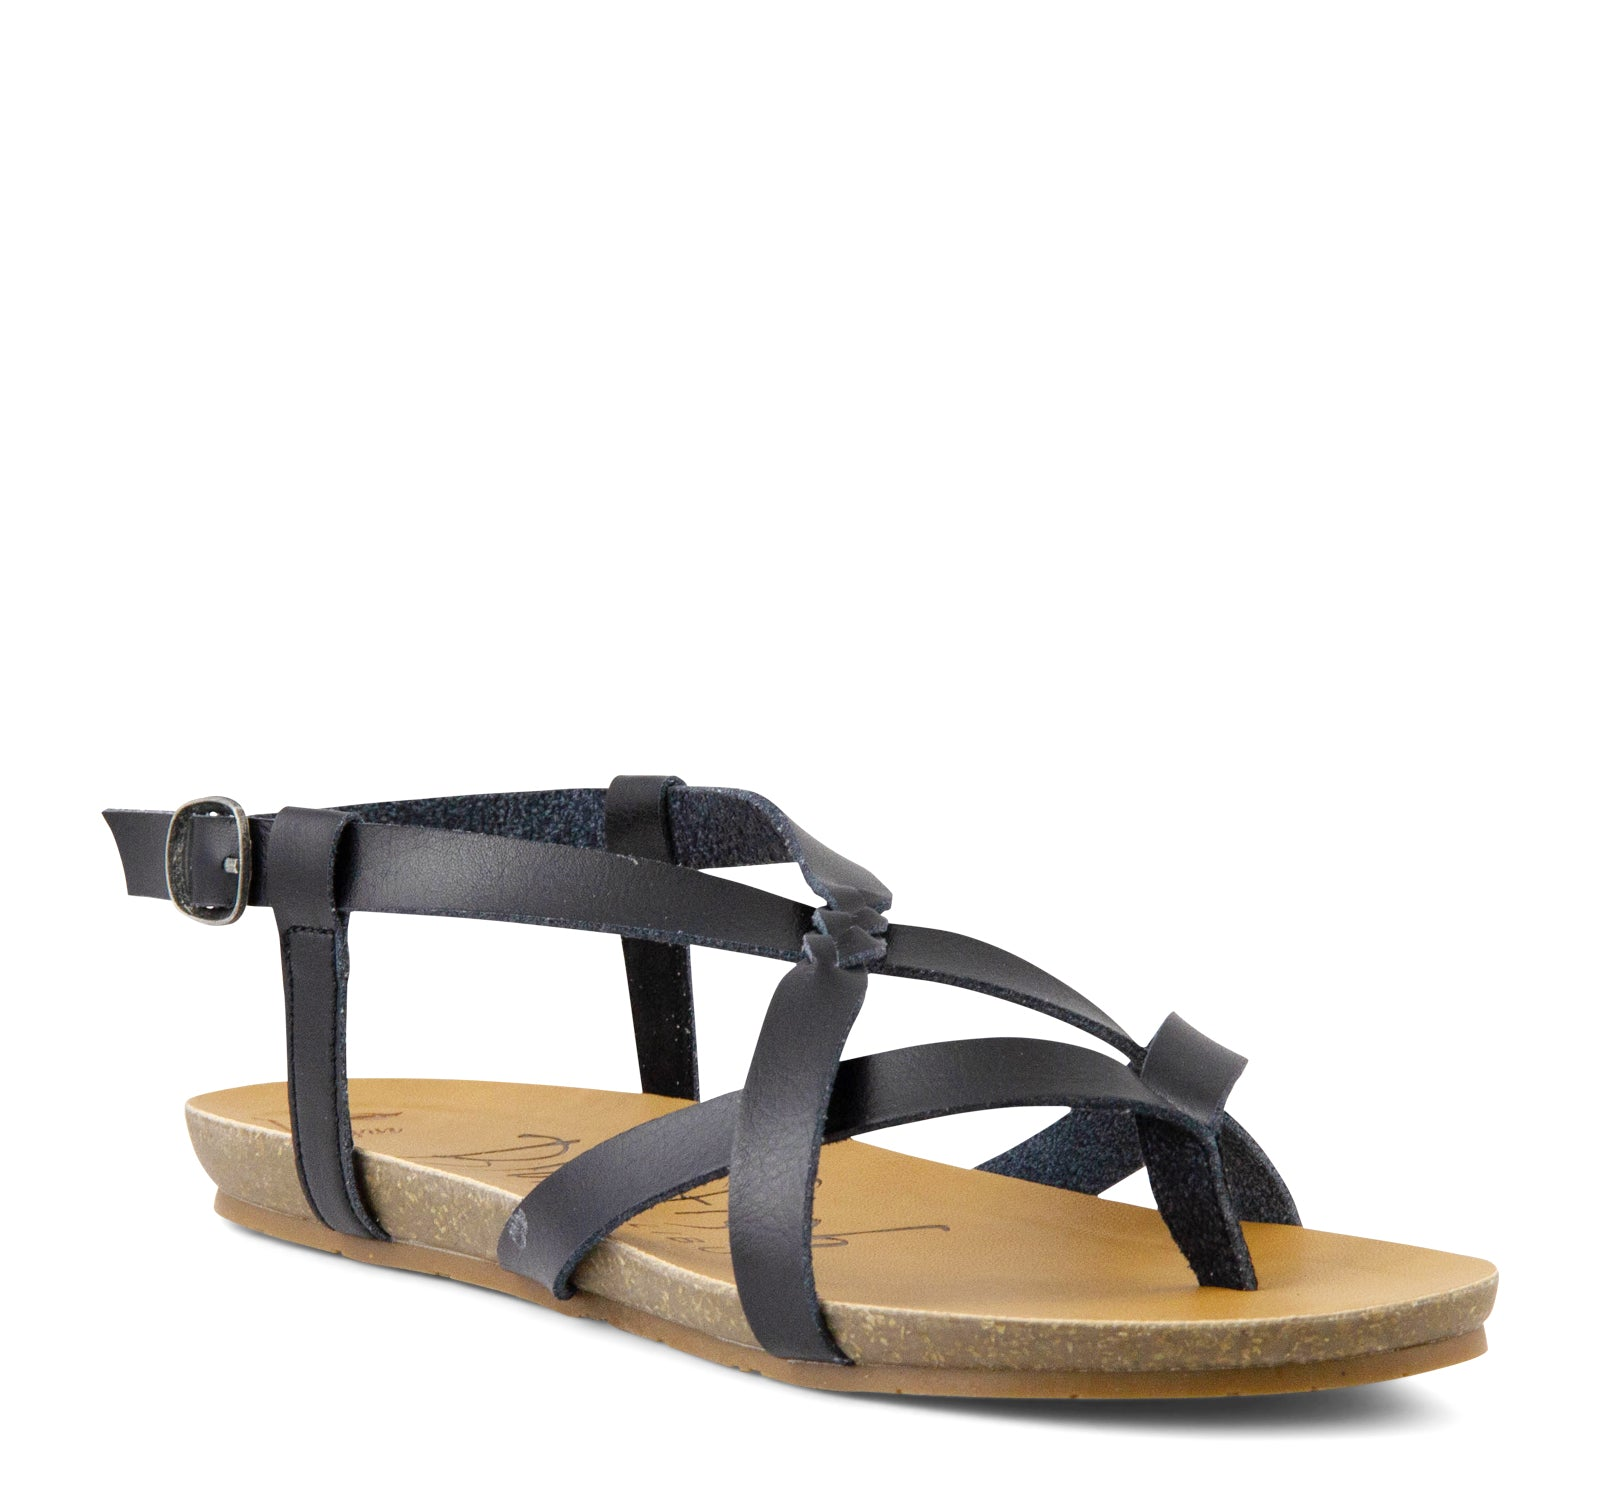 2717dab214bc ... Blowfish Granola-B Women s Sandal in Black - Blowfish Malibu - On The  EDGE ...